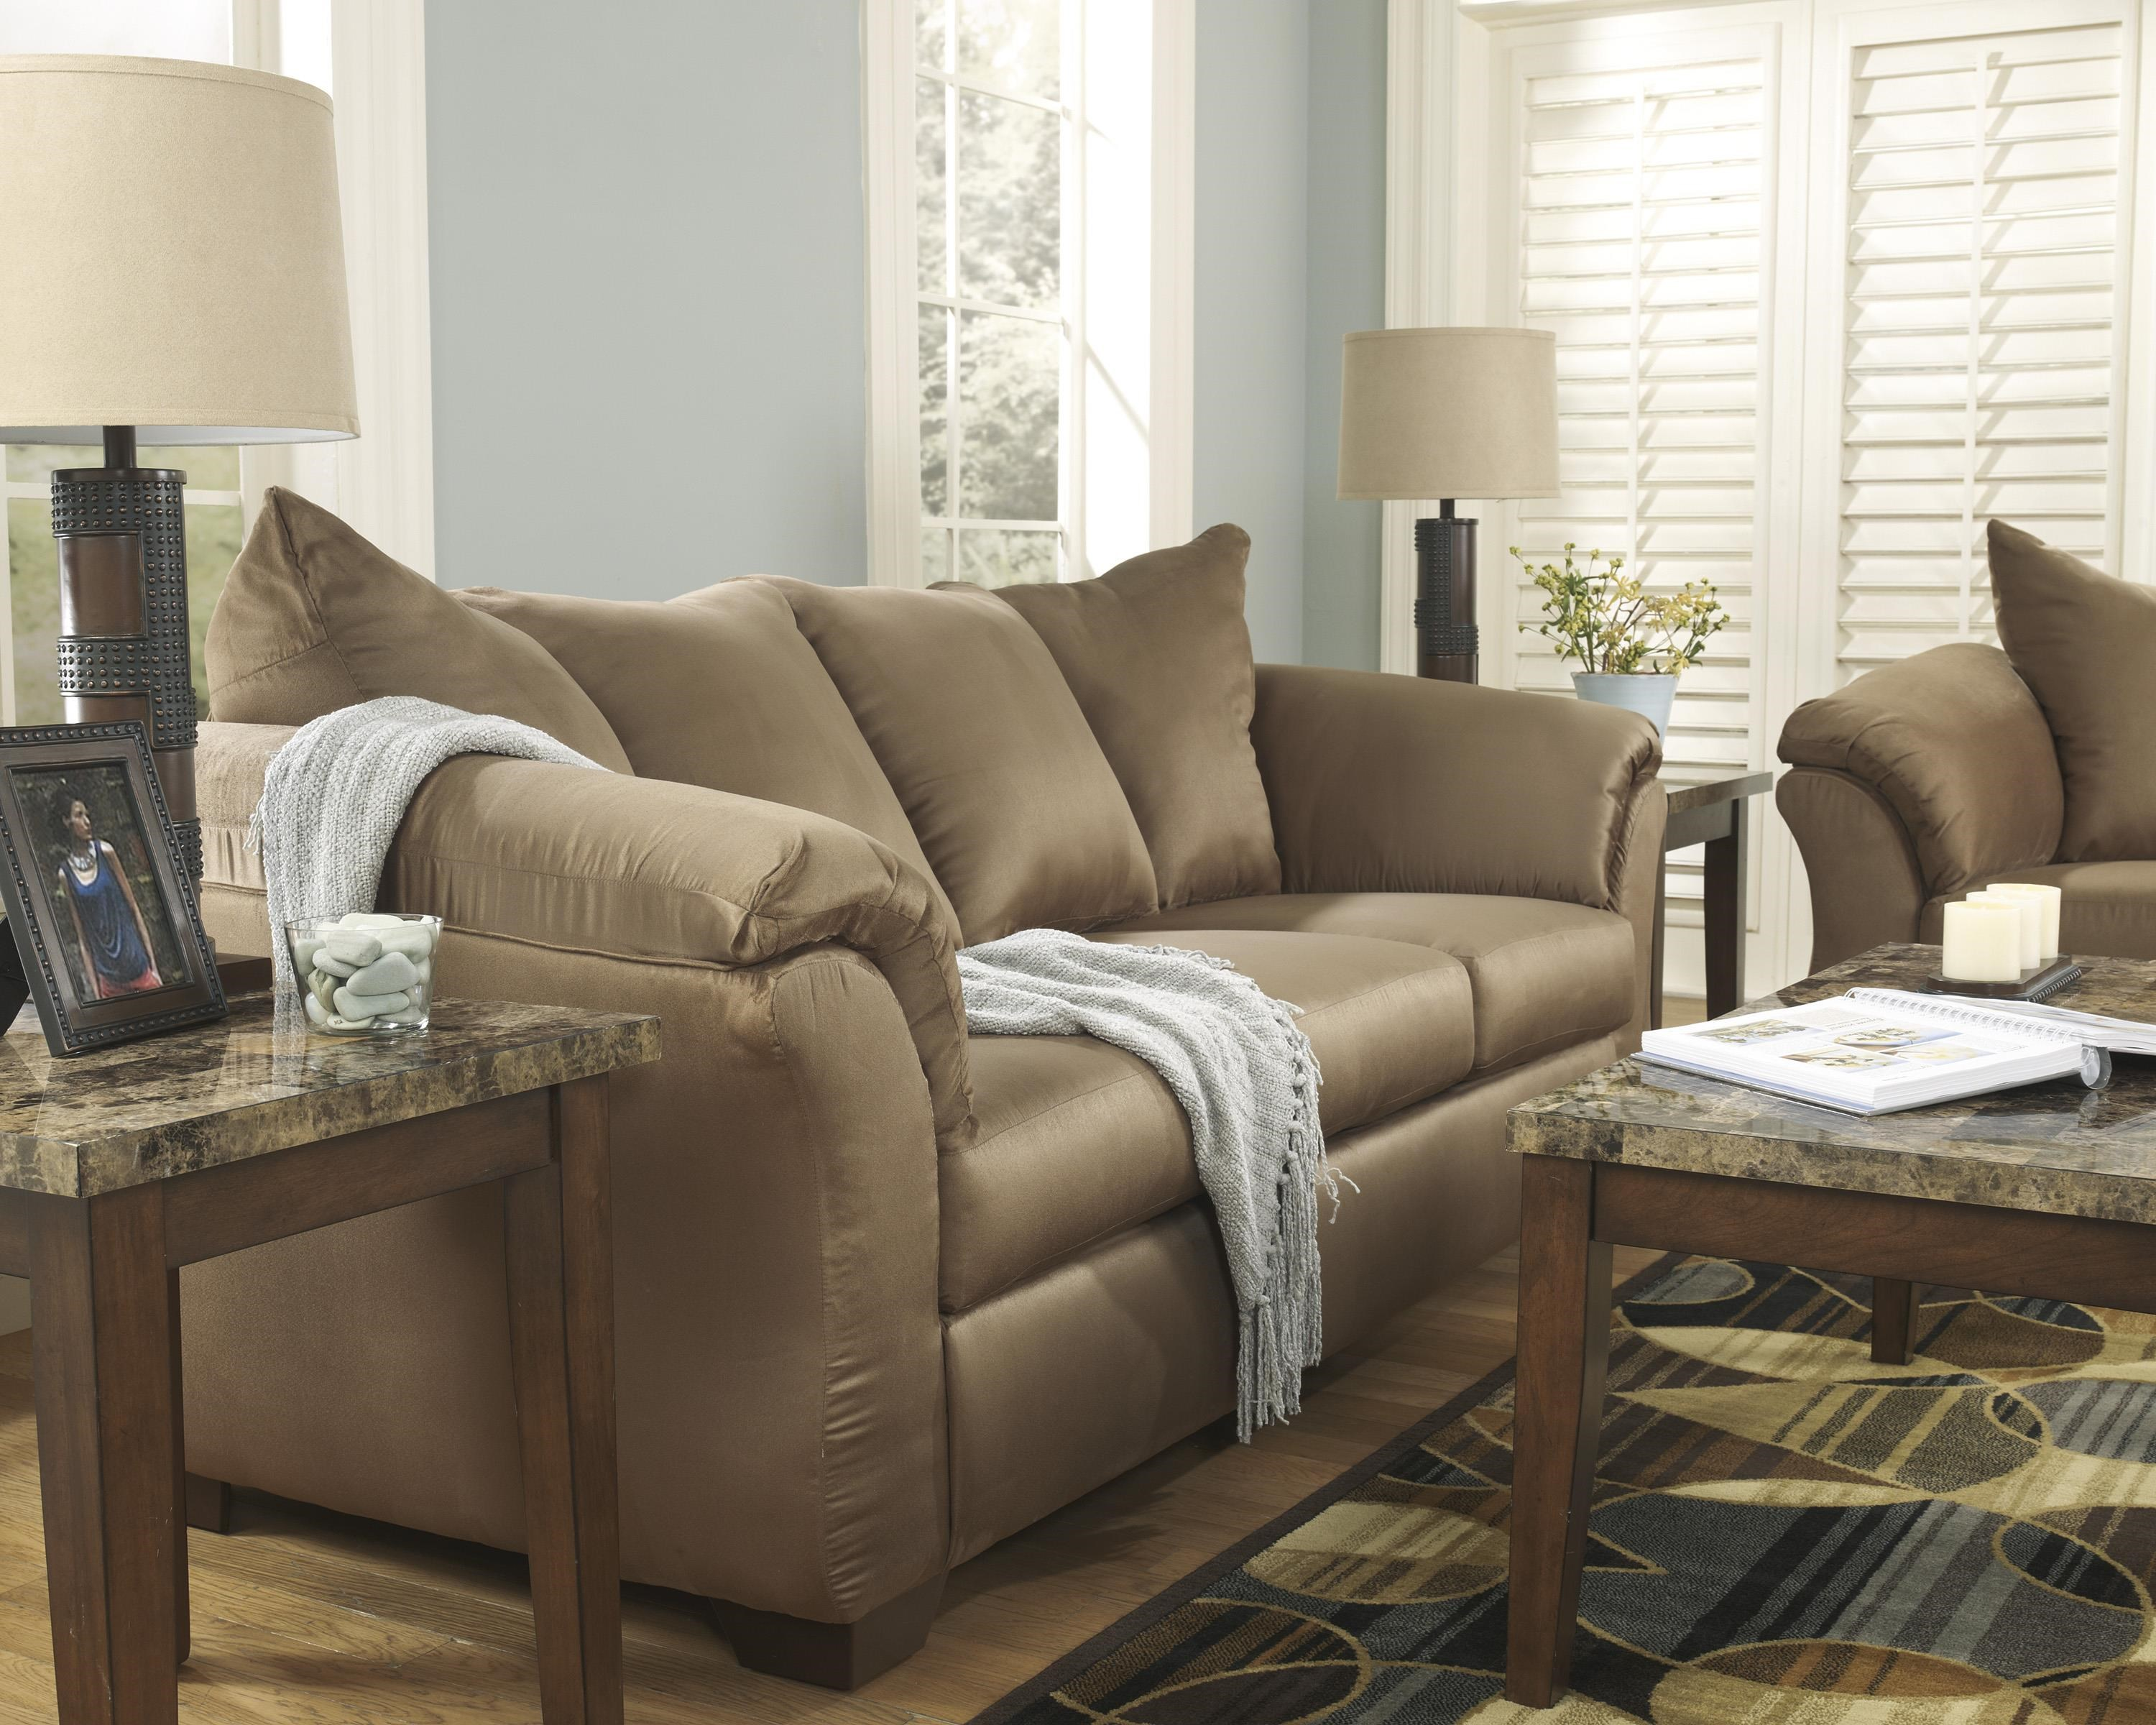 Darcy - Mocha Sofa, Chair and Recliner Set by Signature Design by Ashley at Sam Levitz Furniture